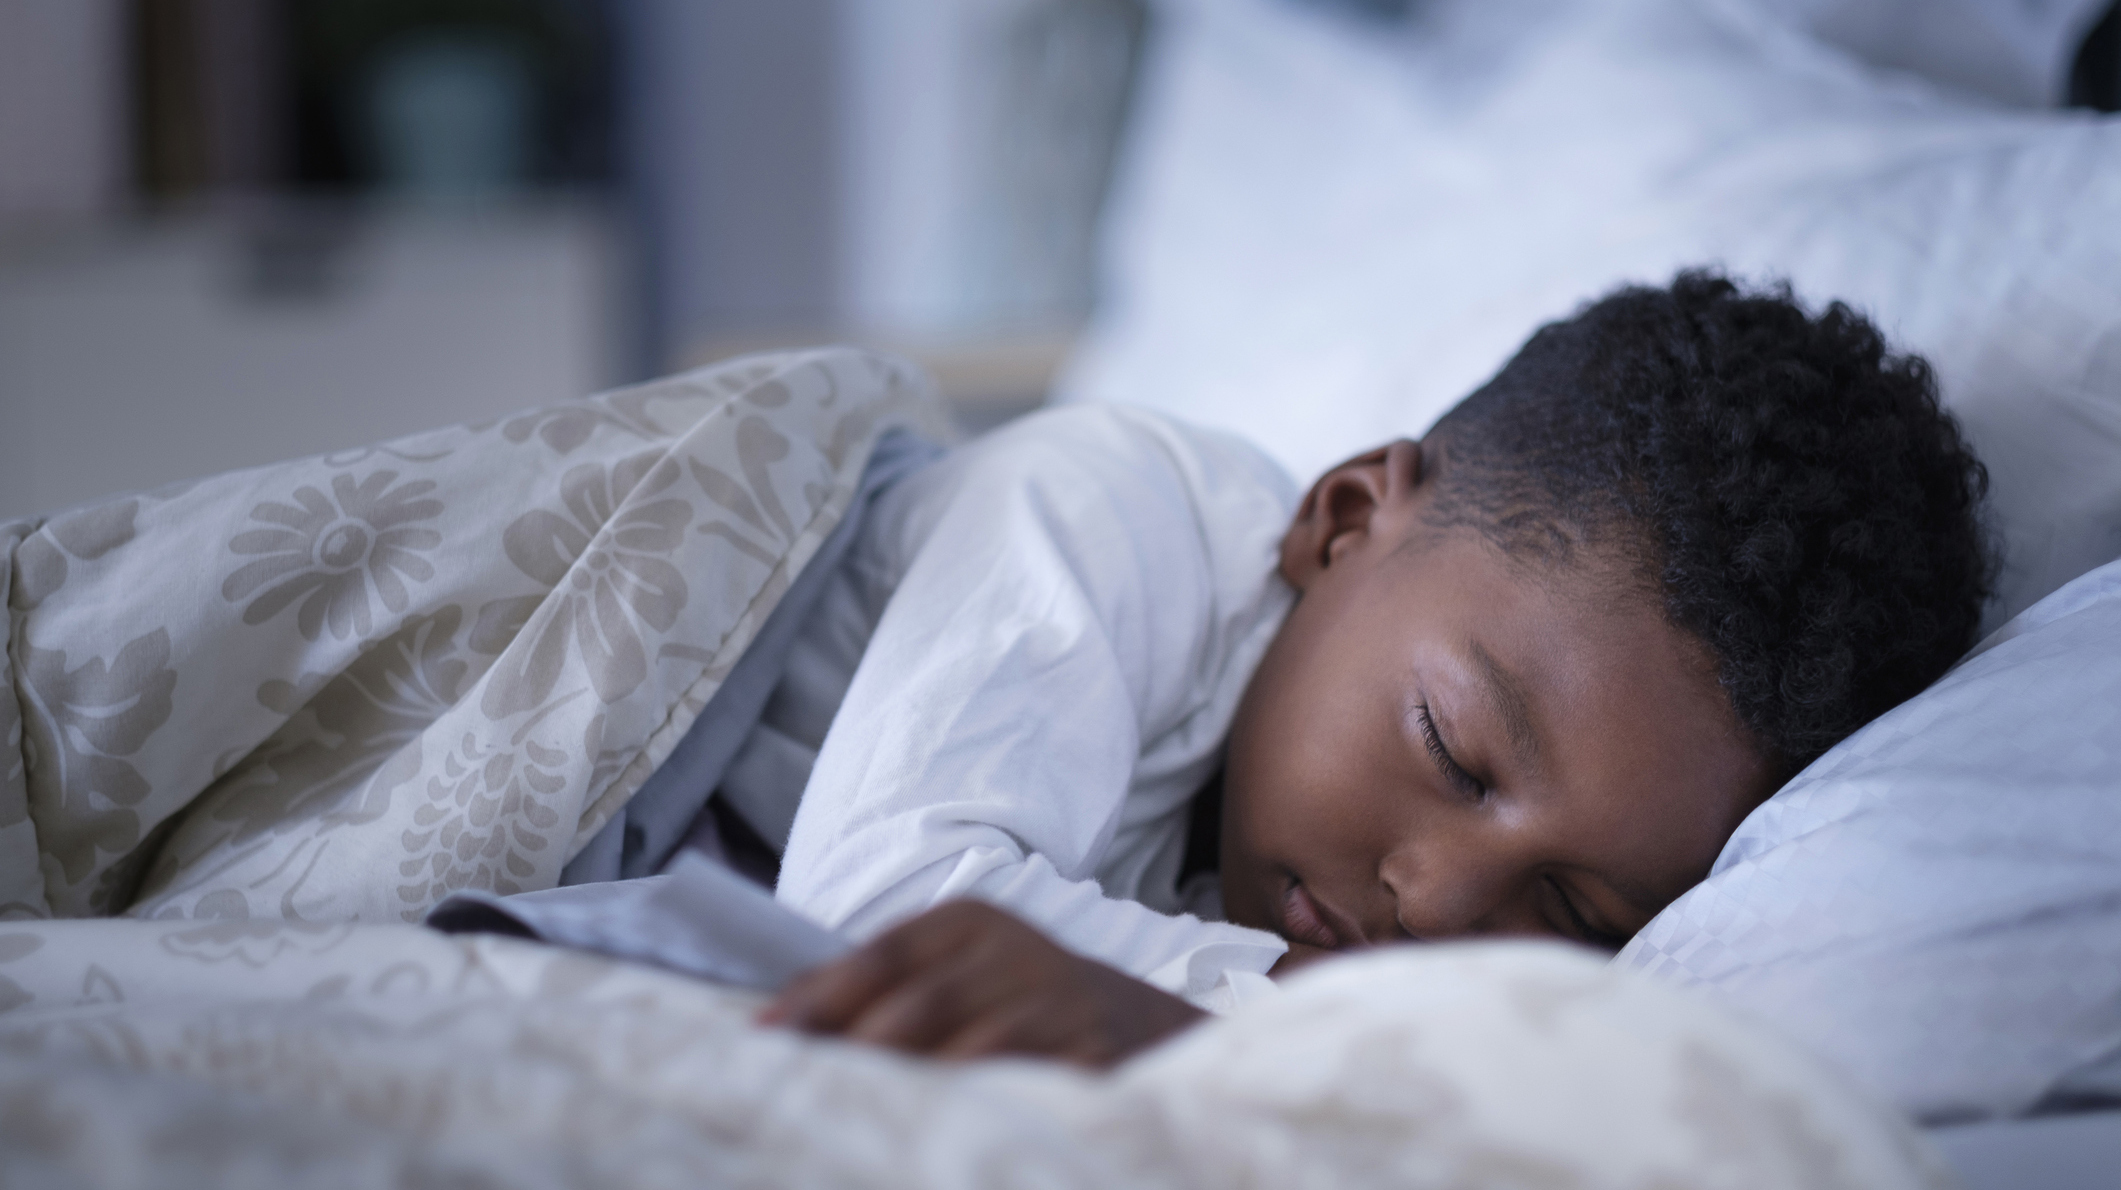 The Kids Are Sleeping Wallpapers High Quality | Download Free